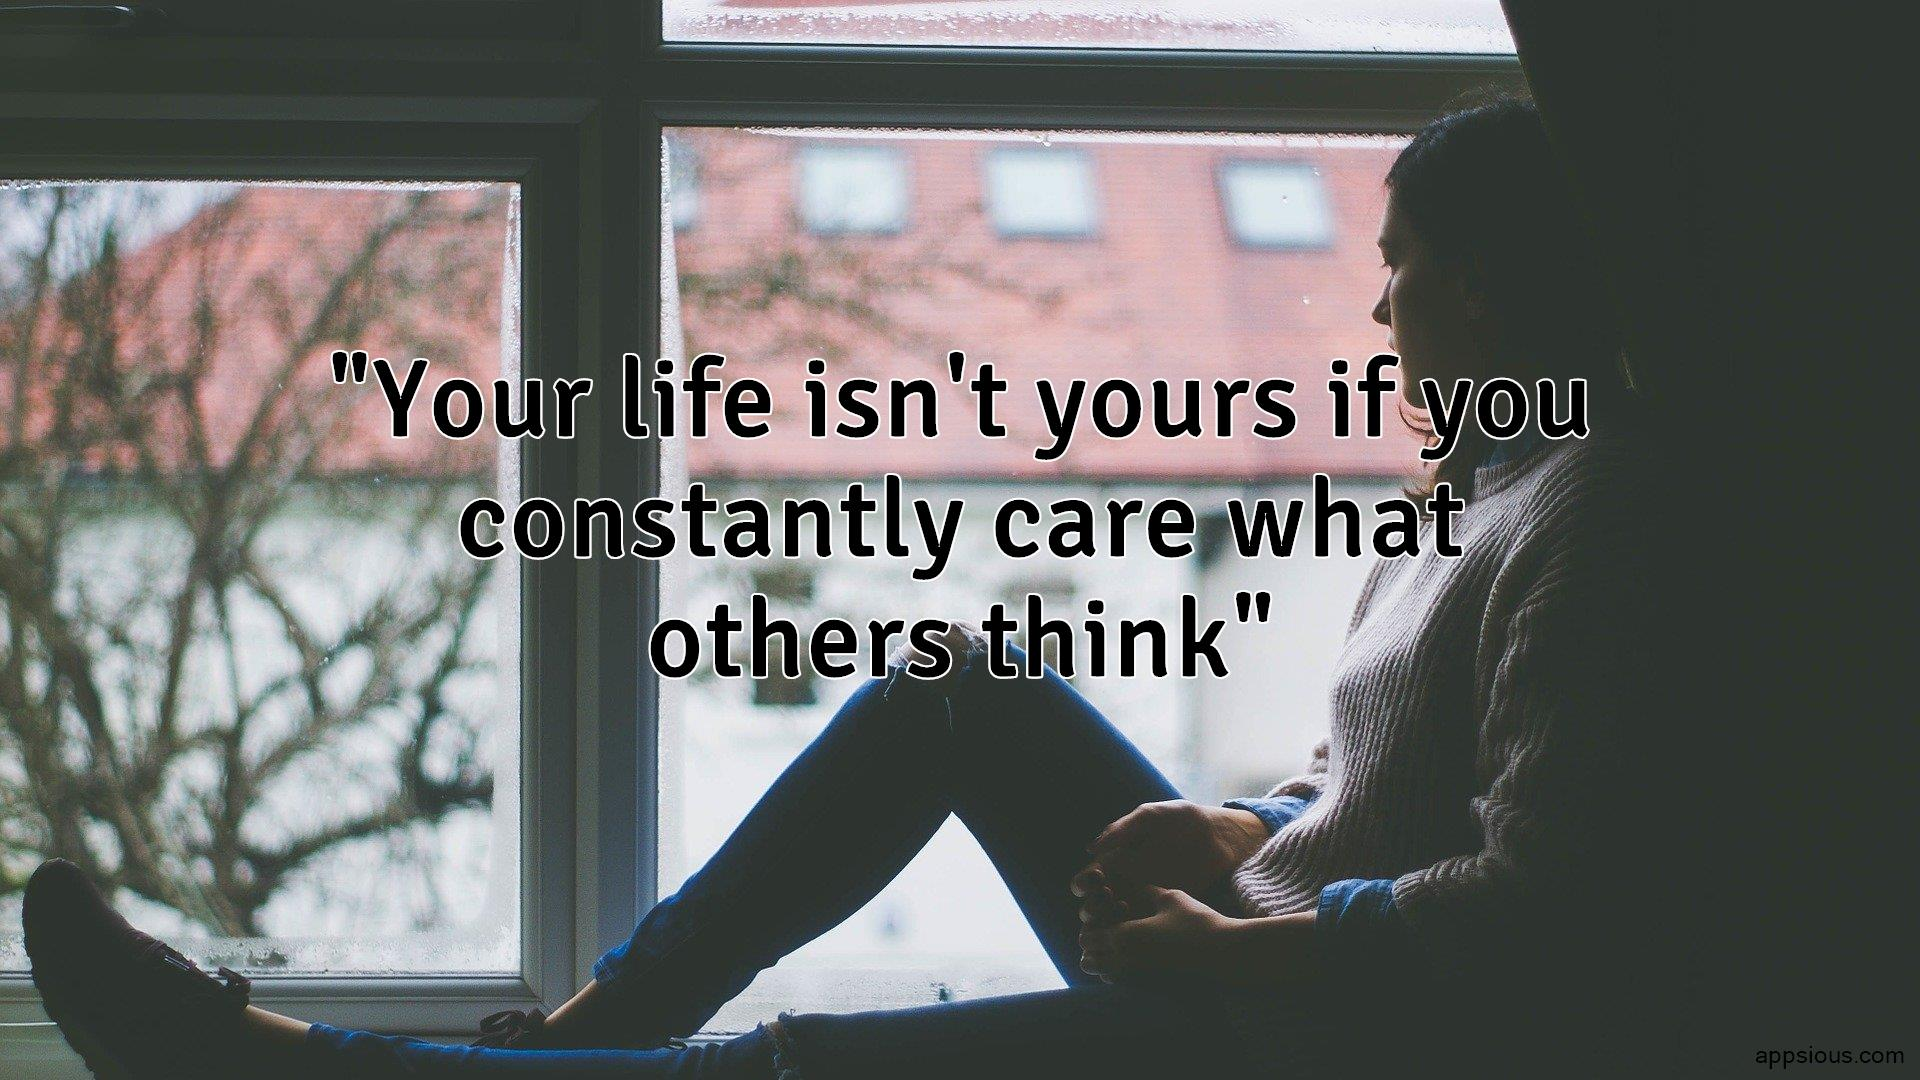 Your life isn't yours if you constantly care what others think